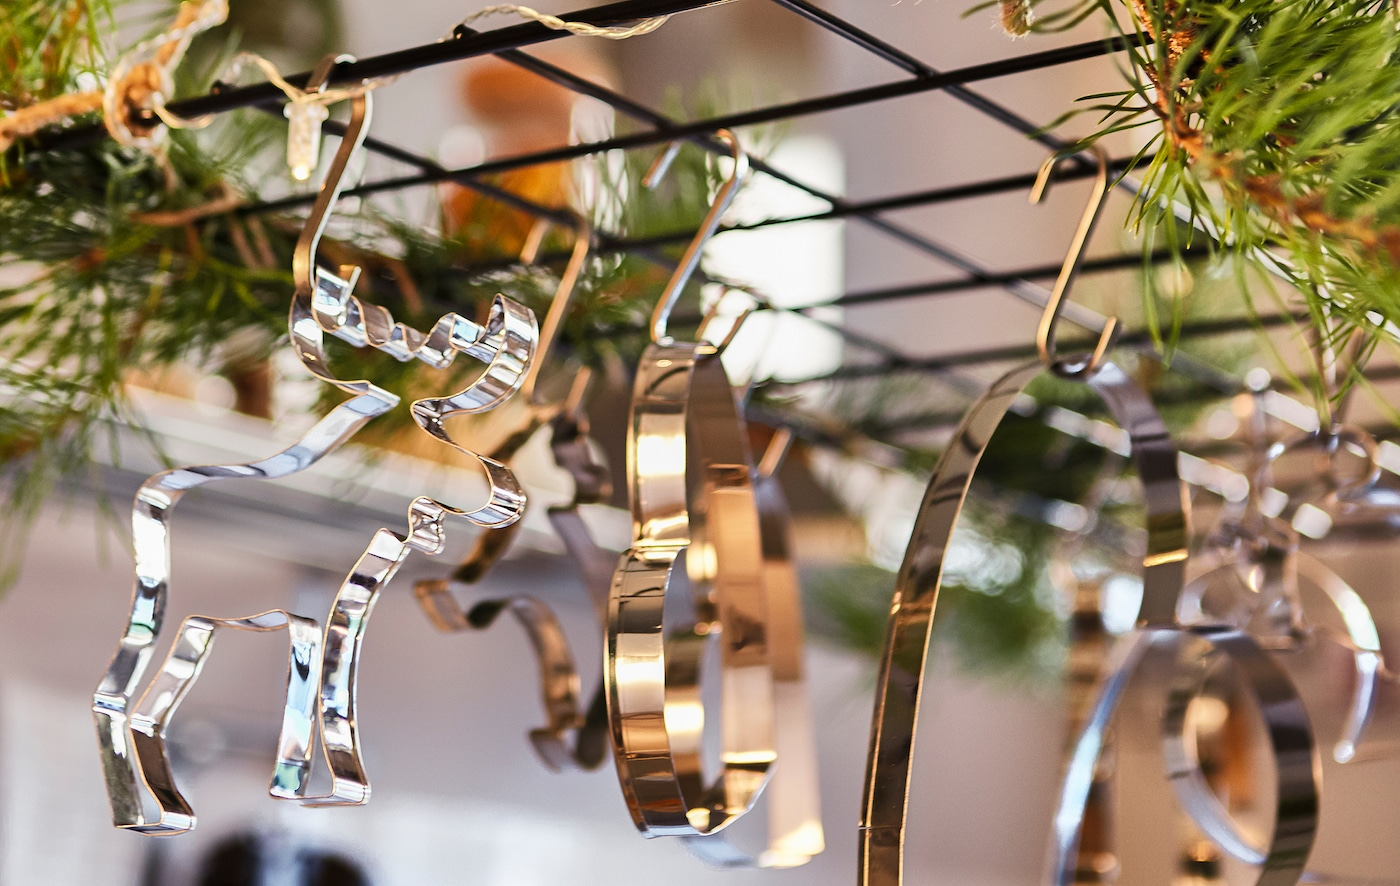 A close-up image of a wire trellis hung above a kitchen island, decorated with greenery and cookie cutters.